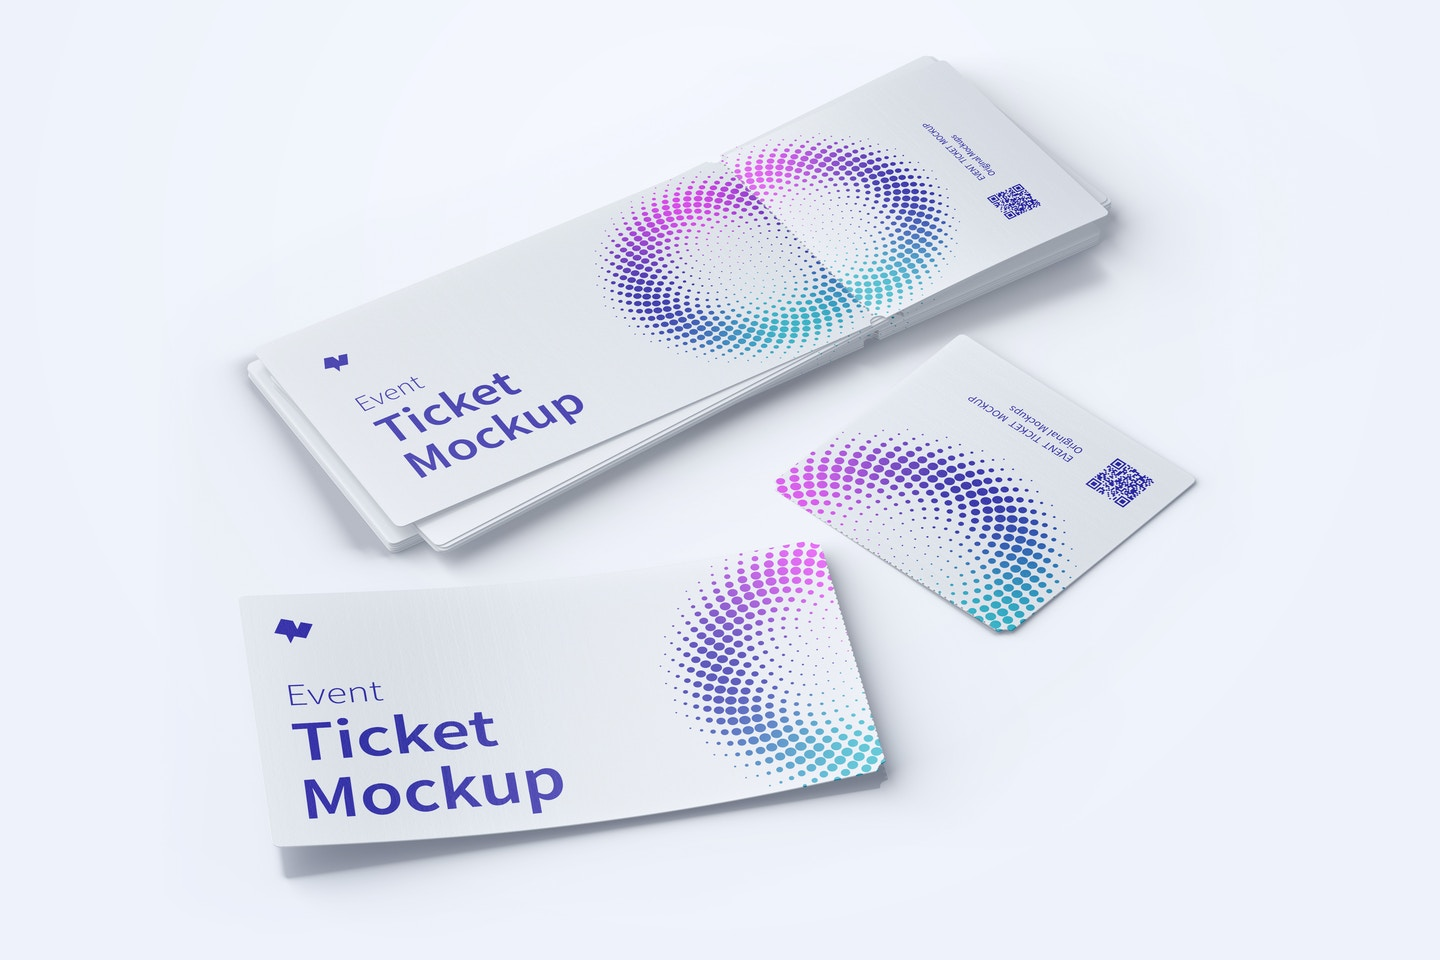 Event Tickets Mockup 03